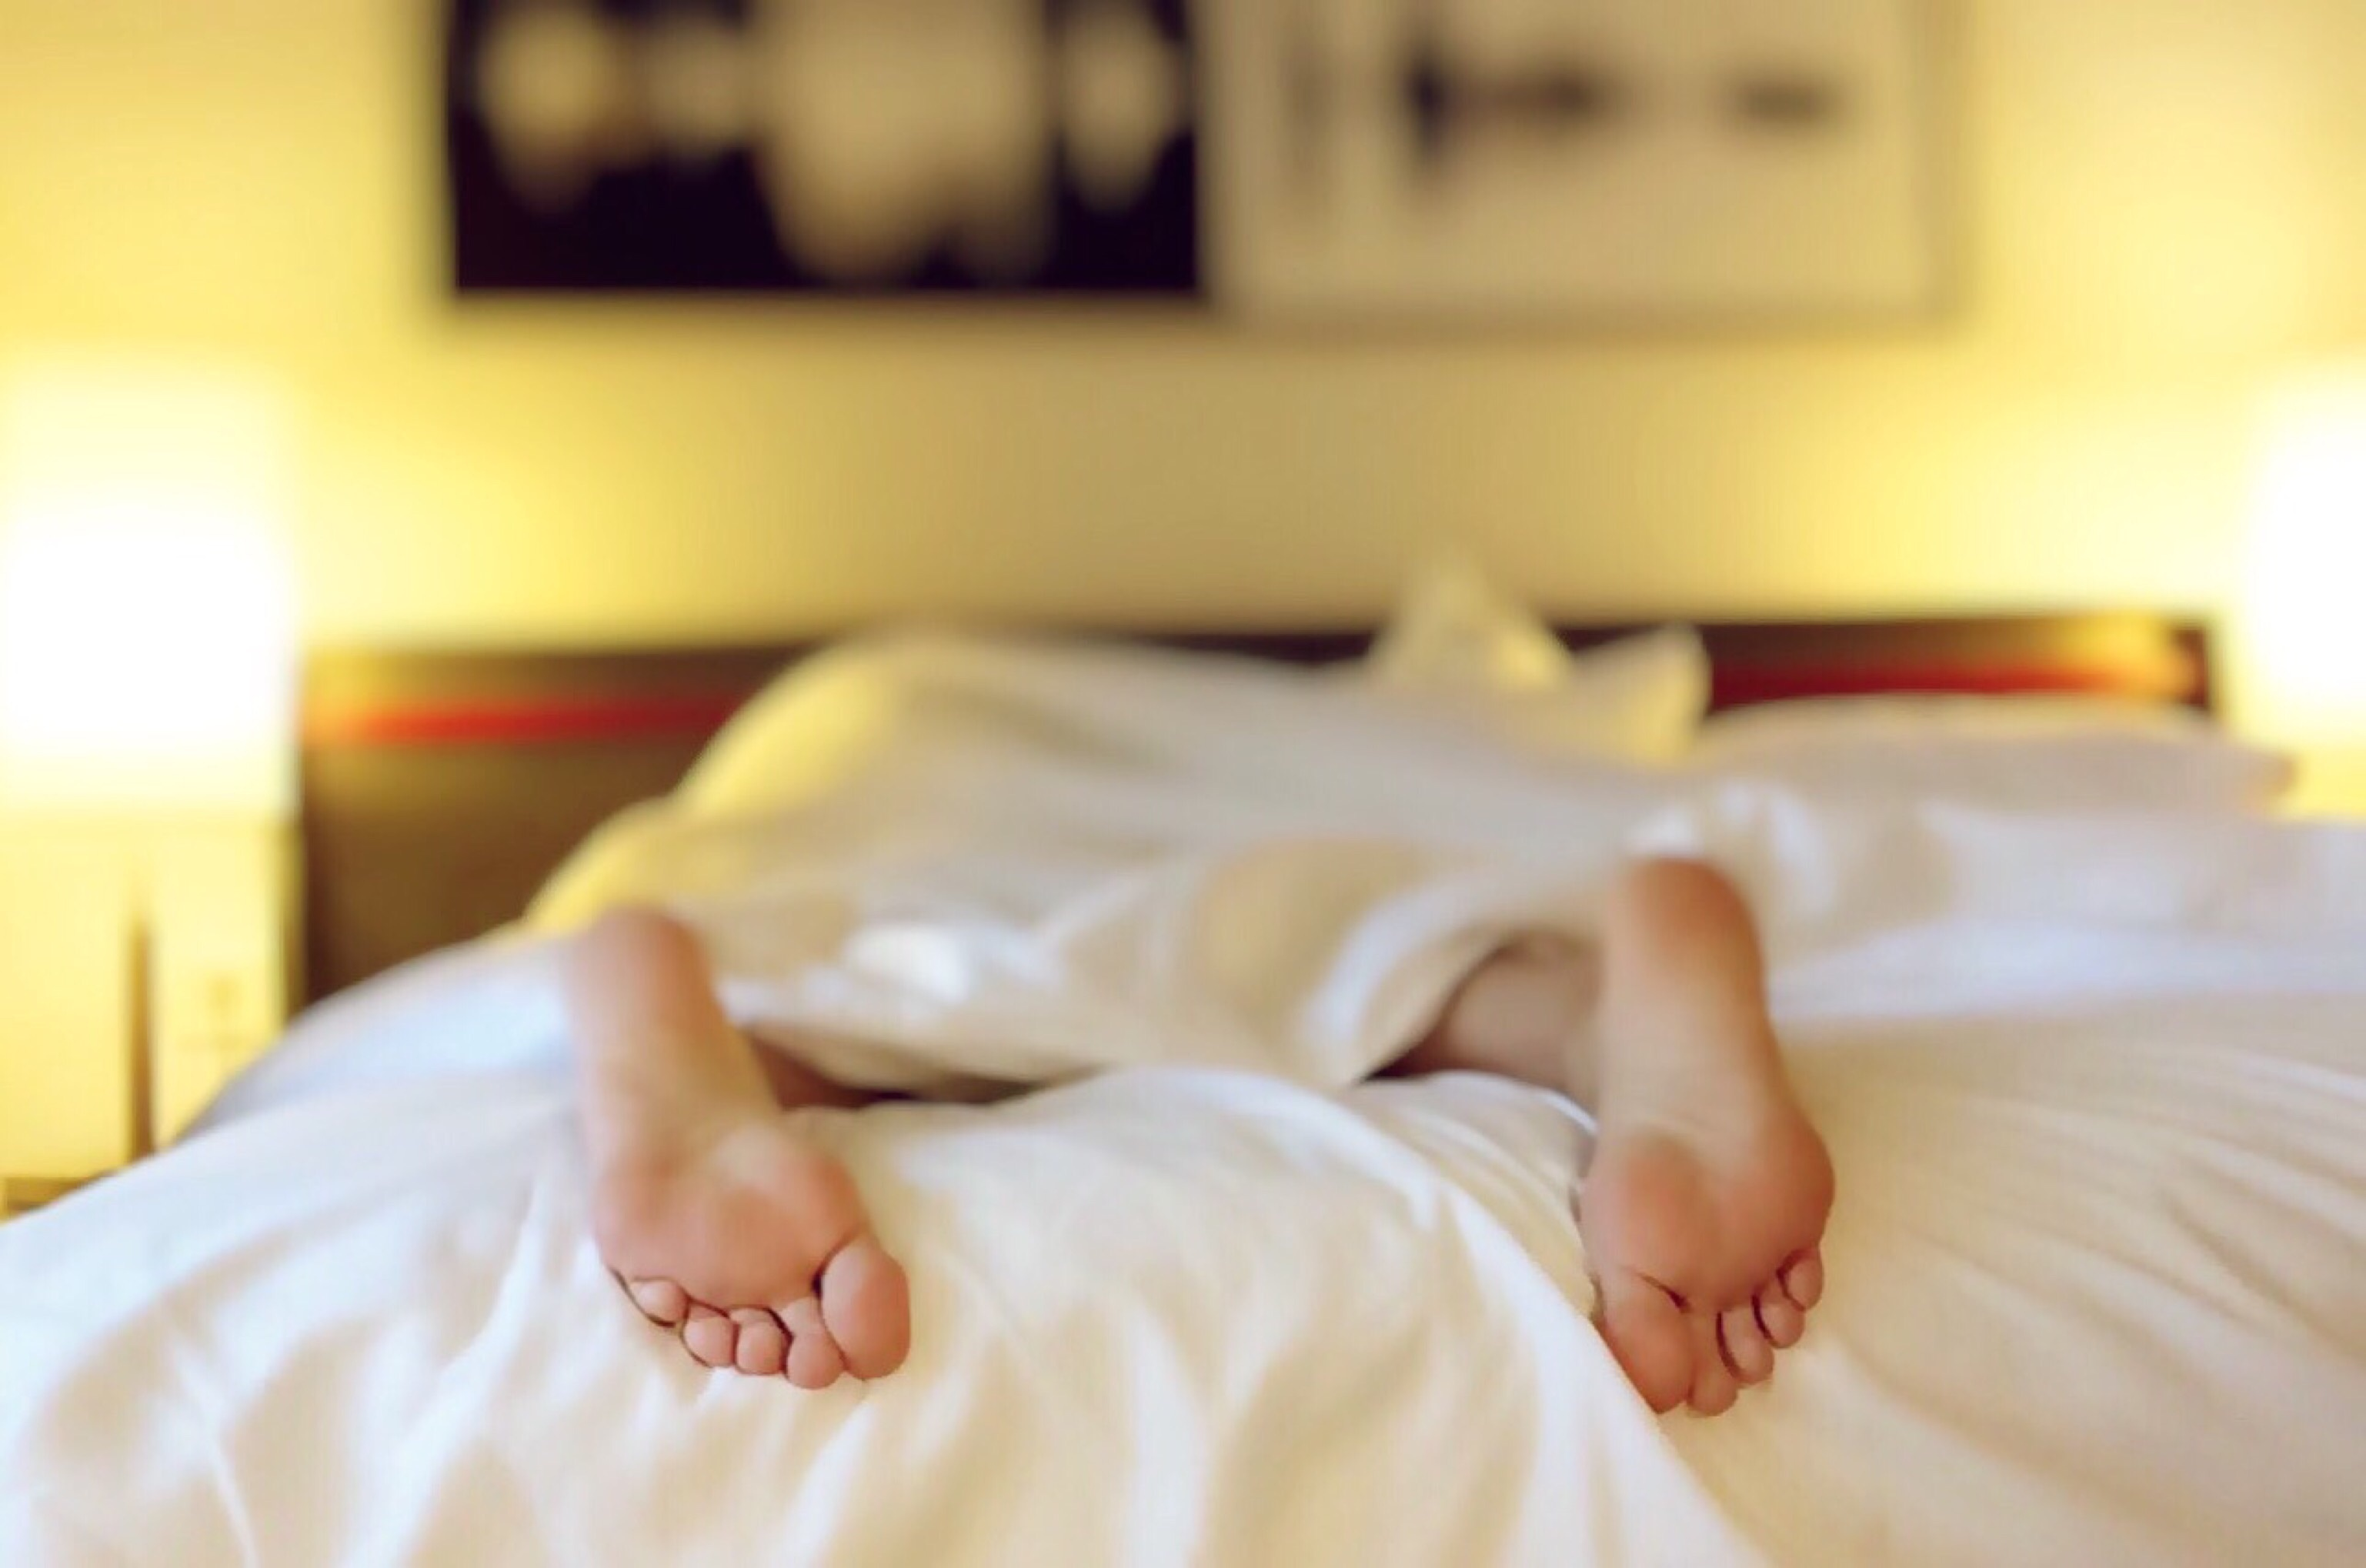 Image of a person sleeping with their feet in the foreground and the rest of their body covered in a blanket